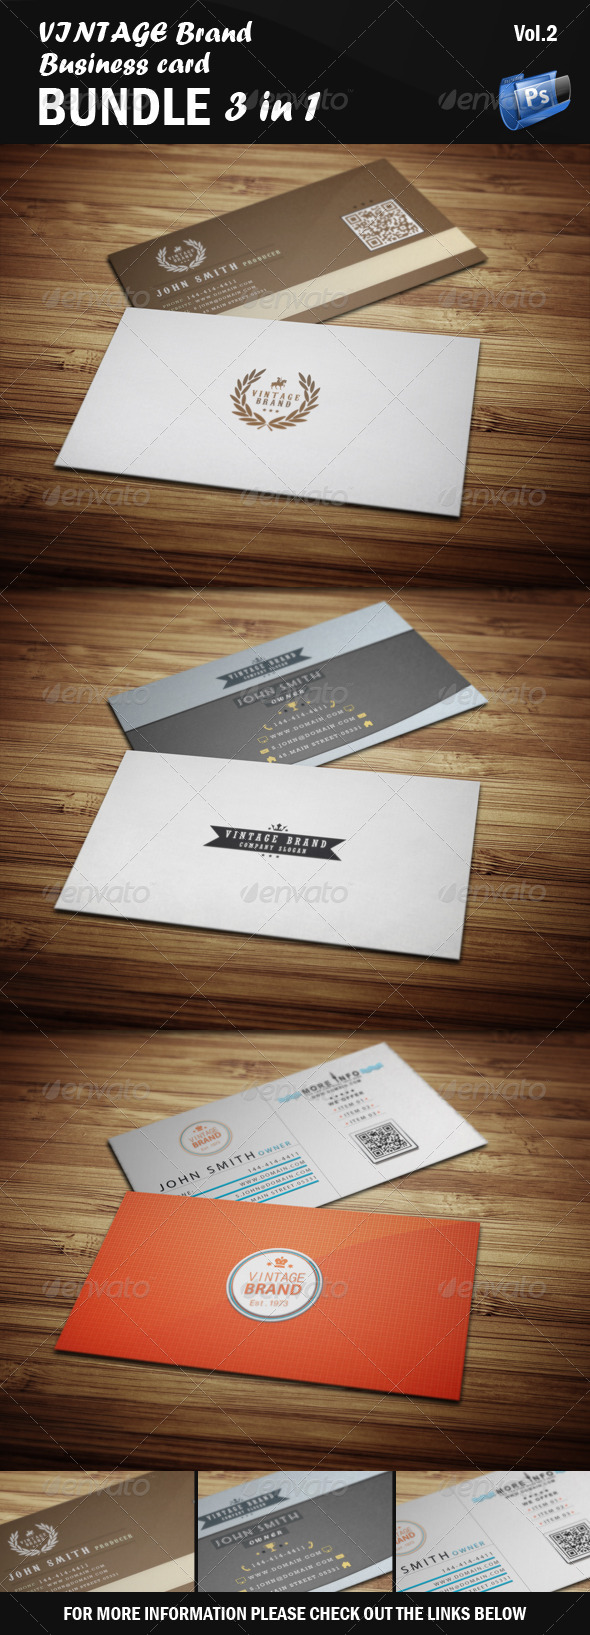 GraphicRiver Vintage Business Card Bundle 3 in 1 [Vol.2] 5507355